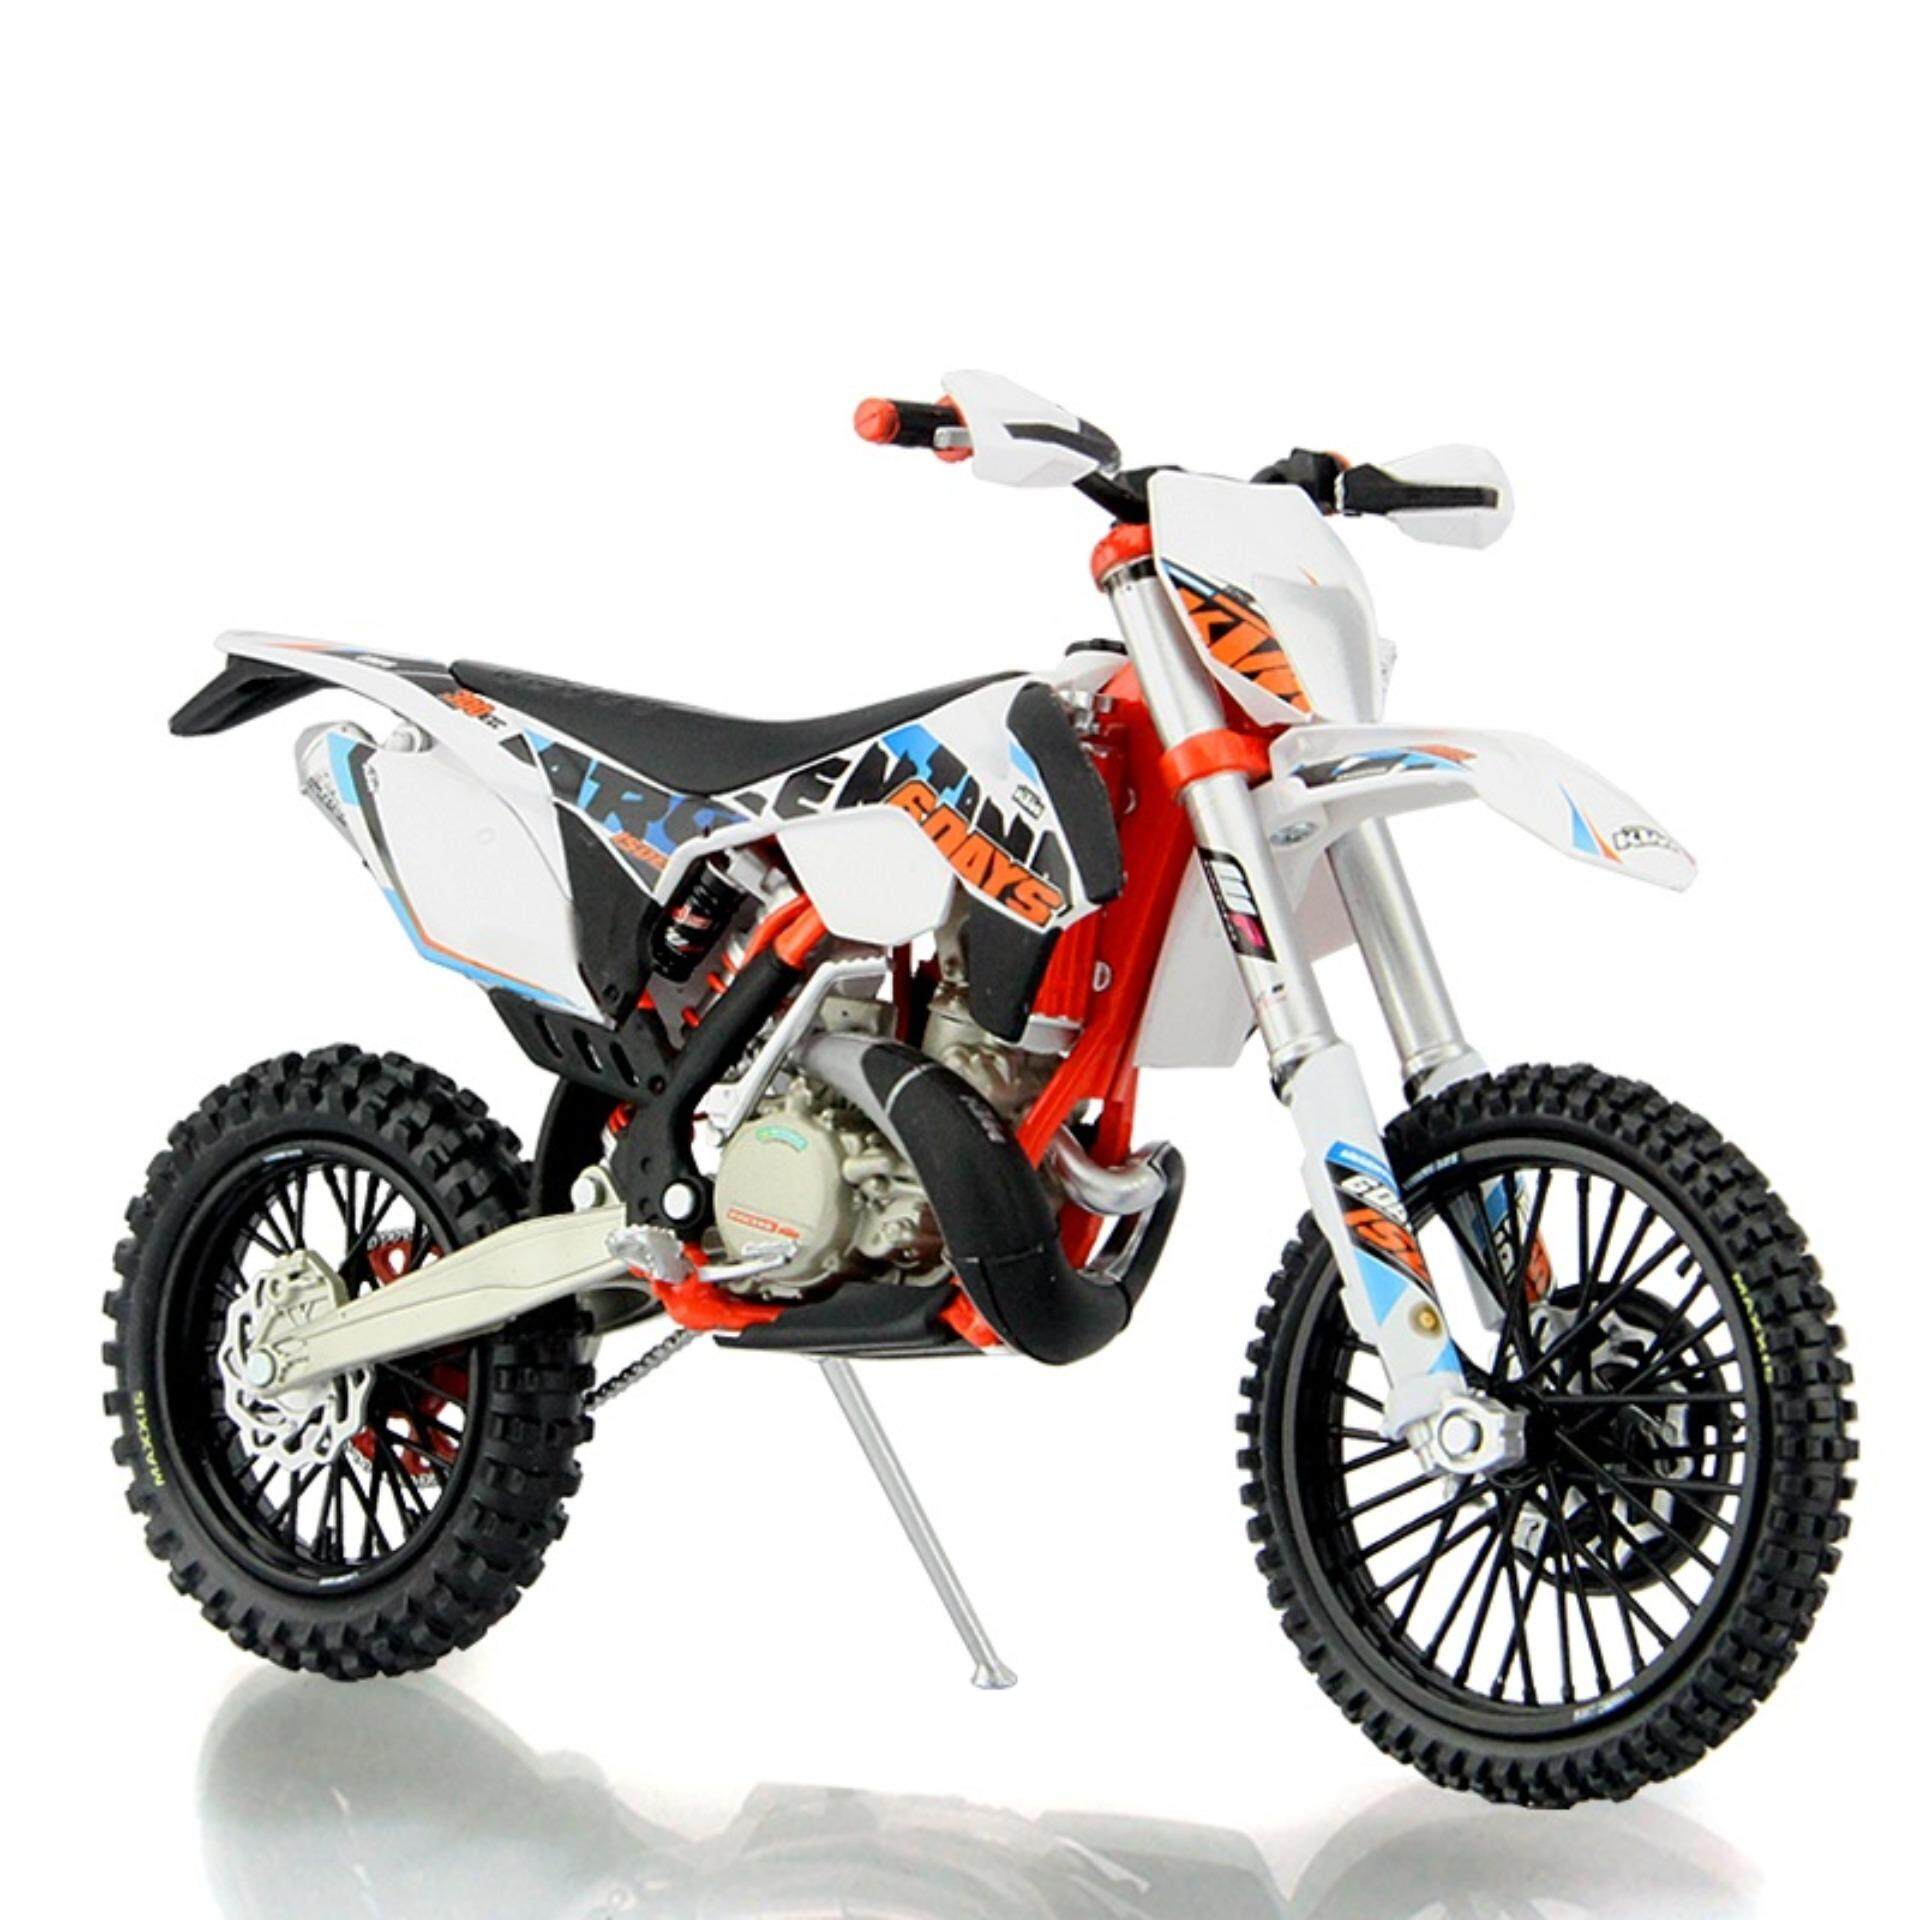 Price Comparisons For Automaxx 1 12 Ktm Exc 300 6 Days Argentina 2015 Diecast Motocross Joy City Intl